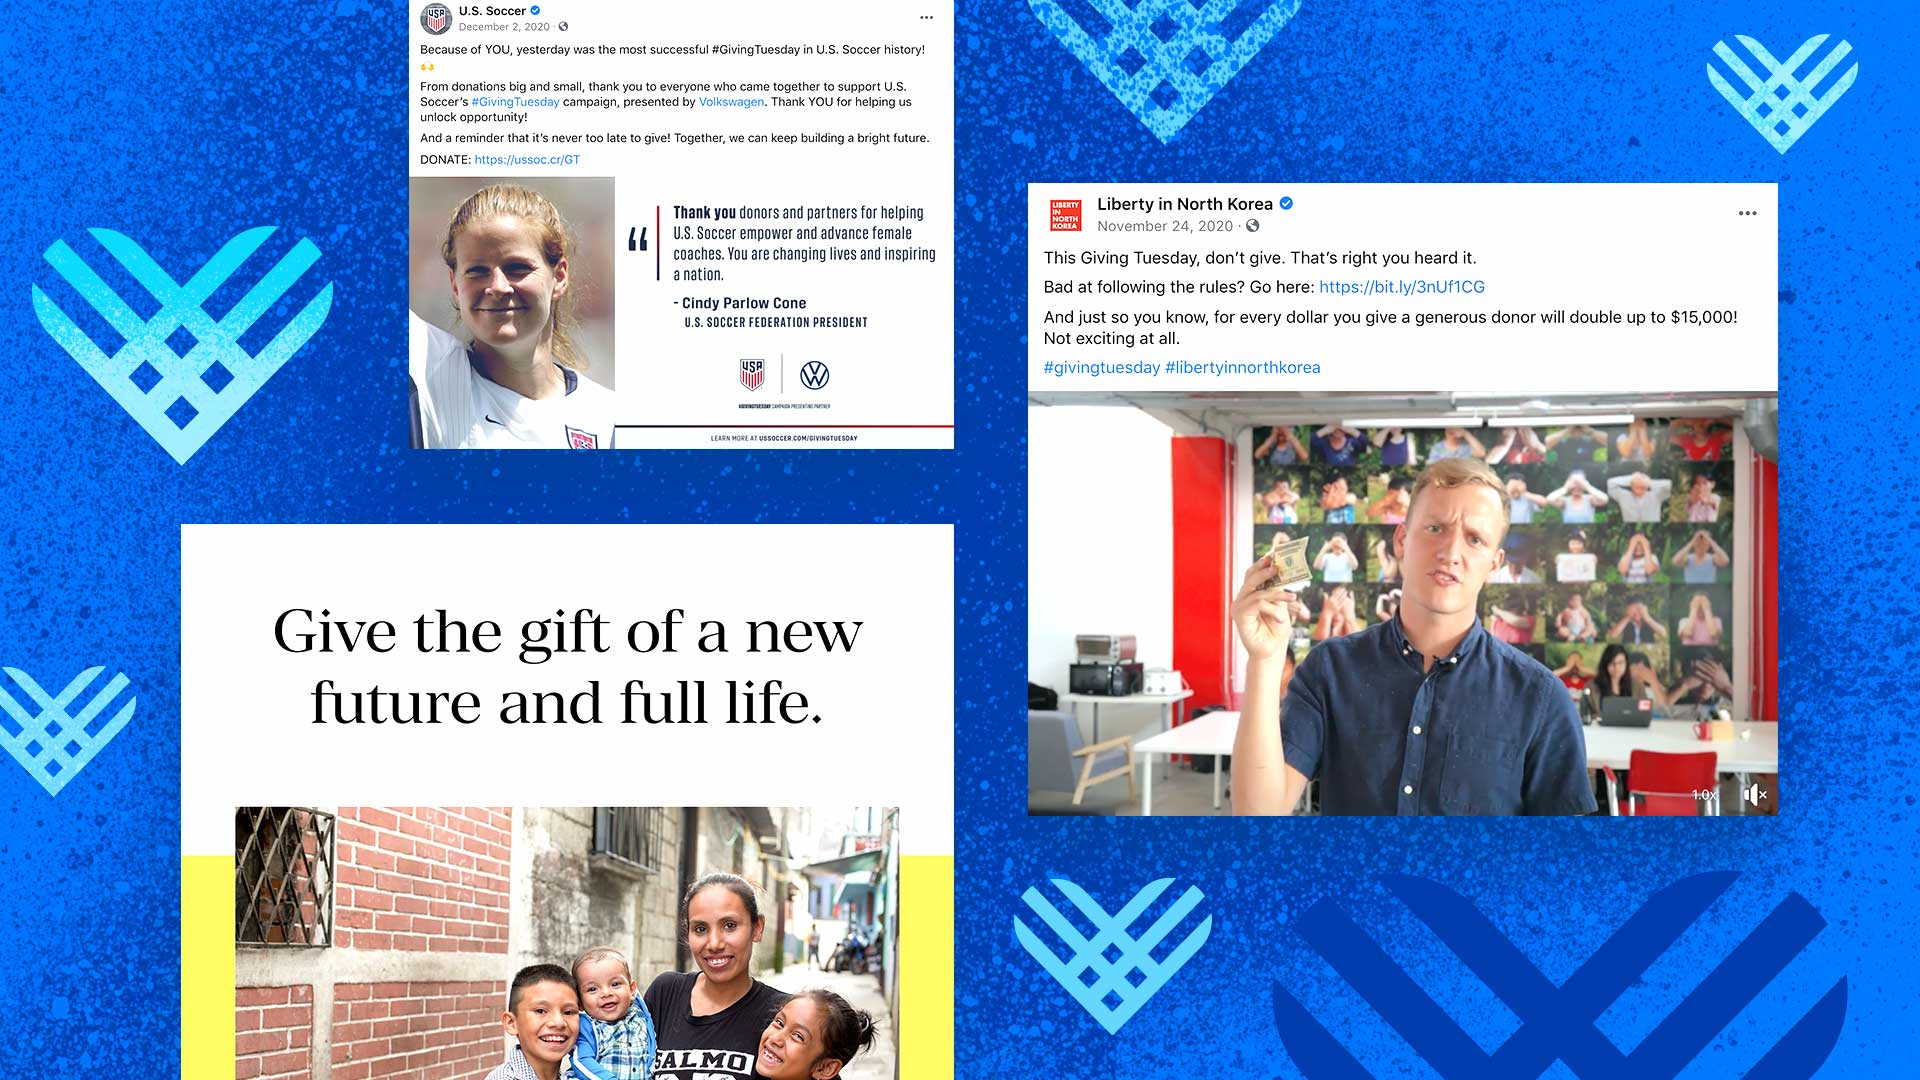 Various examples of social media posts for Giving Tuesday float around Giving Tuesday hearts.